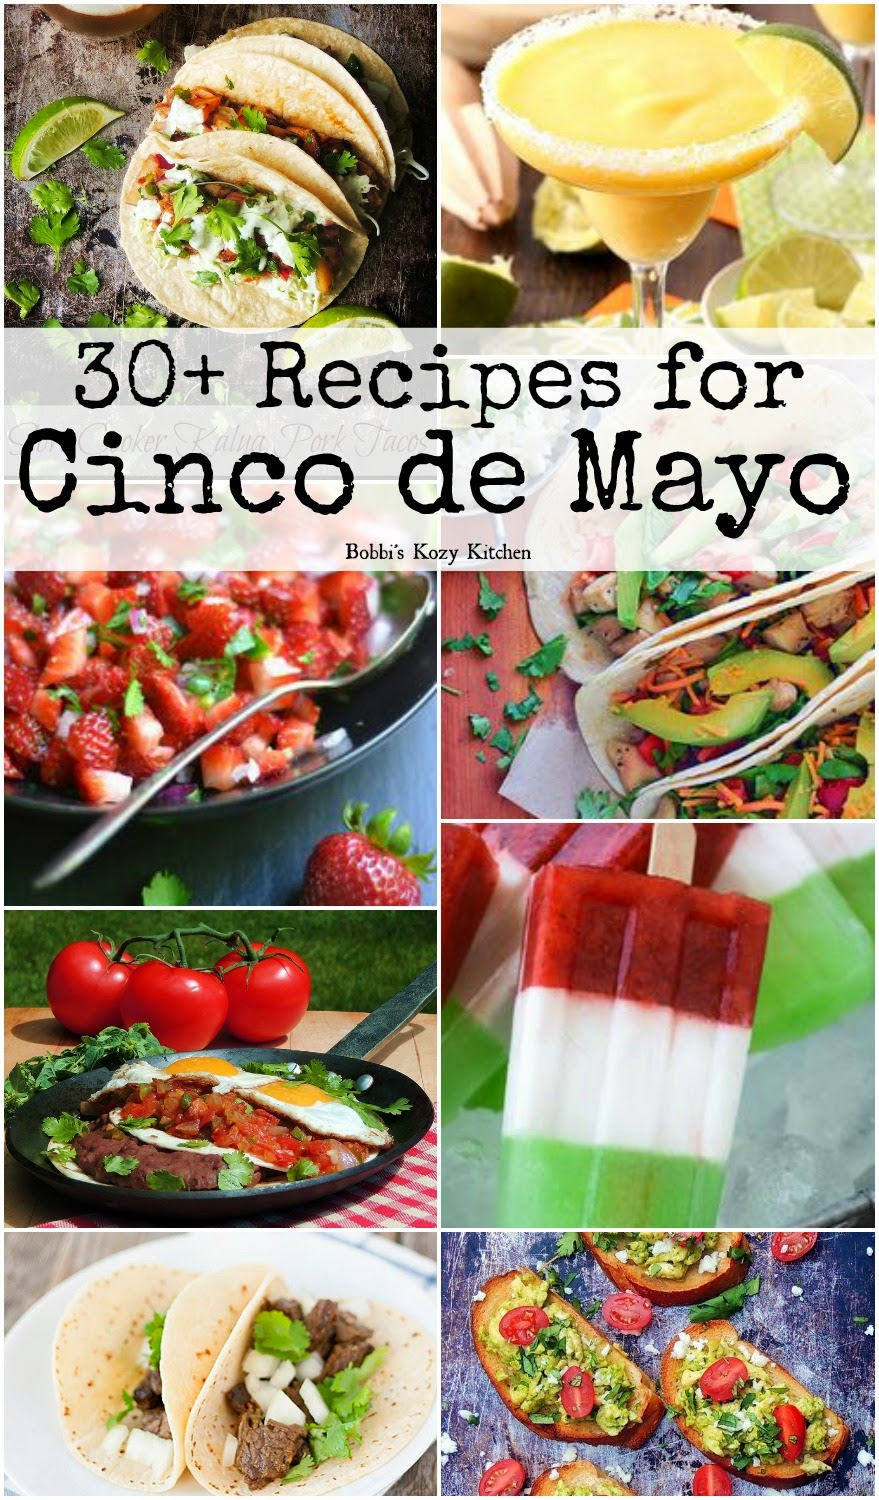 30+ Recipes for Cinco de Mao - Fabulously delicious Mexican inspired dishes and drinks. www.bobbiskozykitchen.com